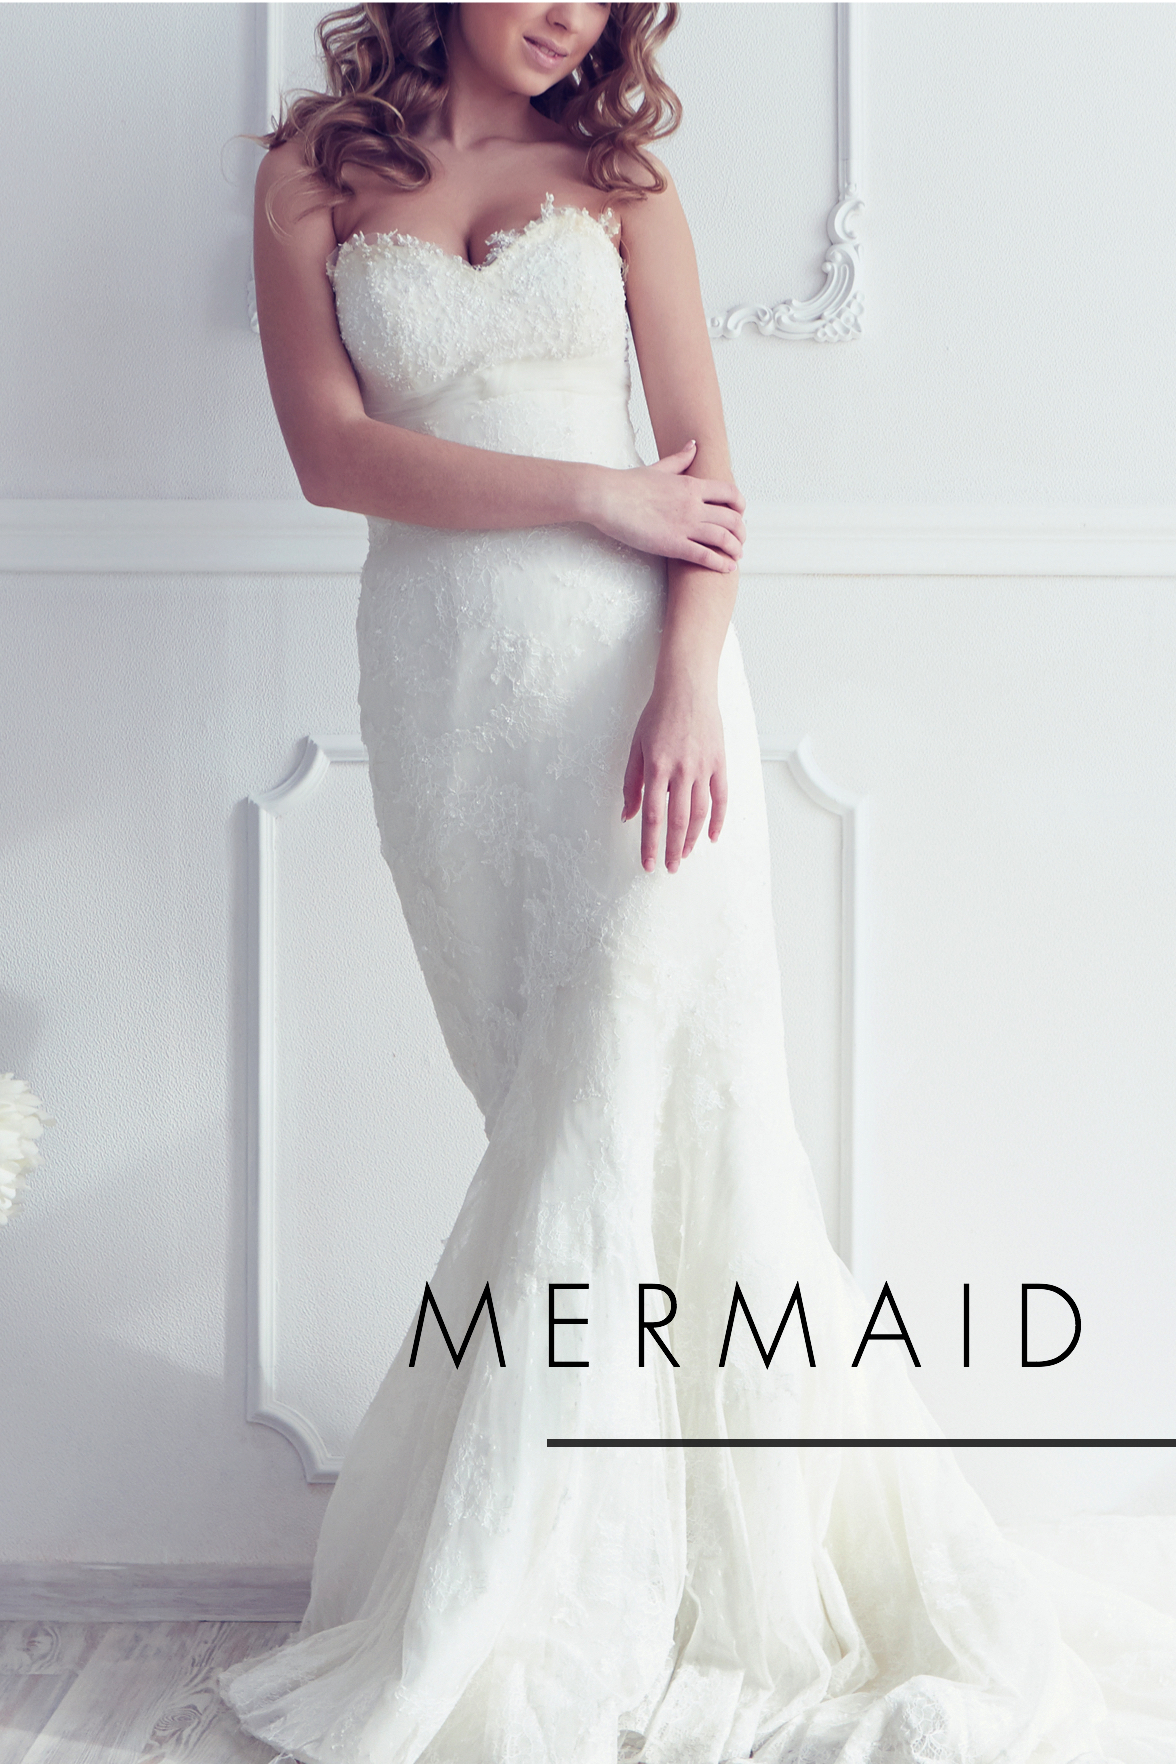 Mermaid Dresses